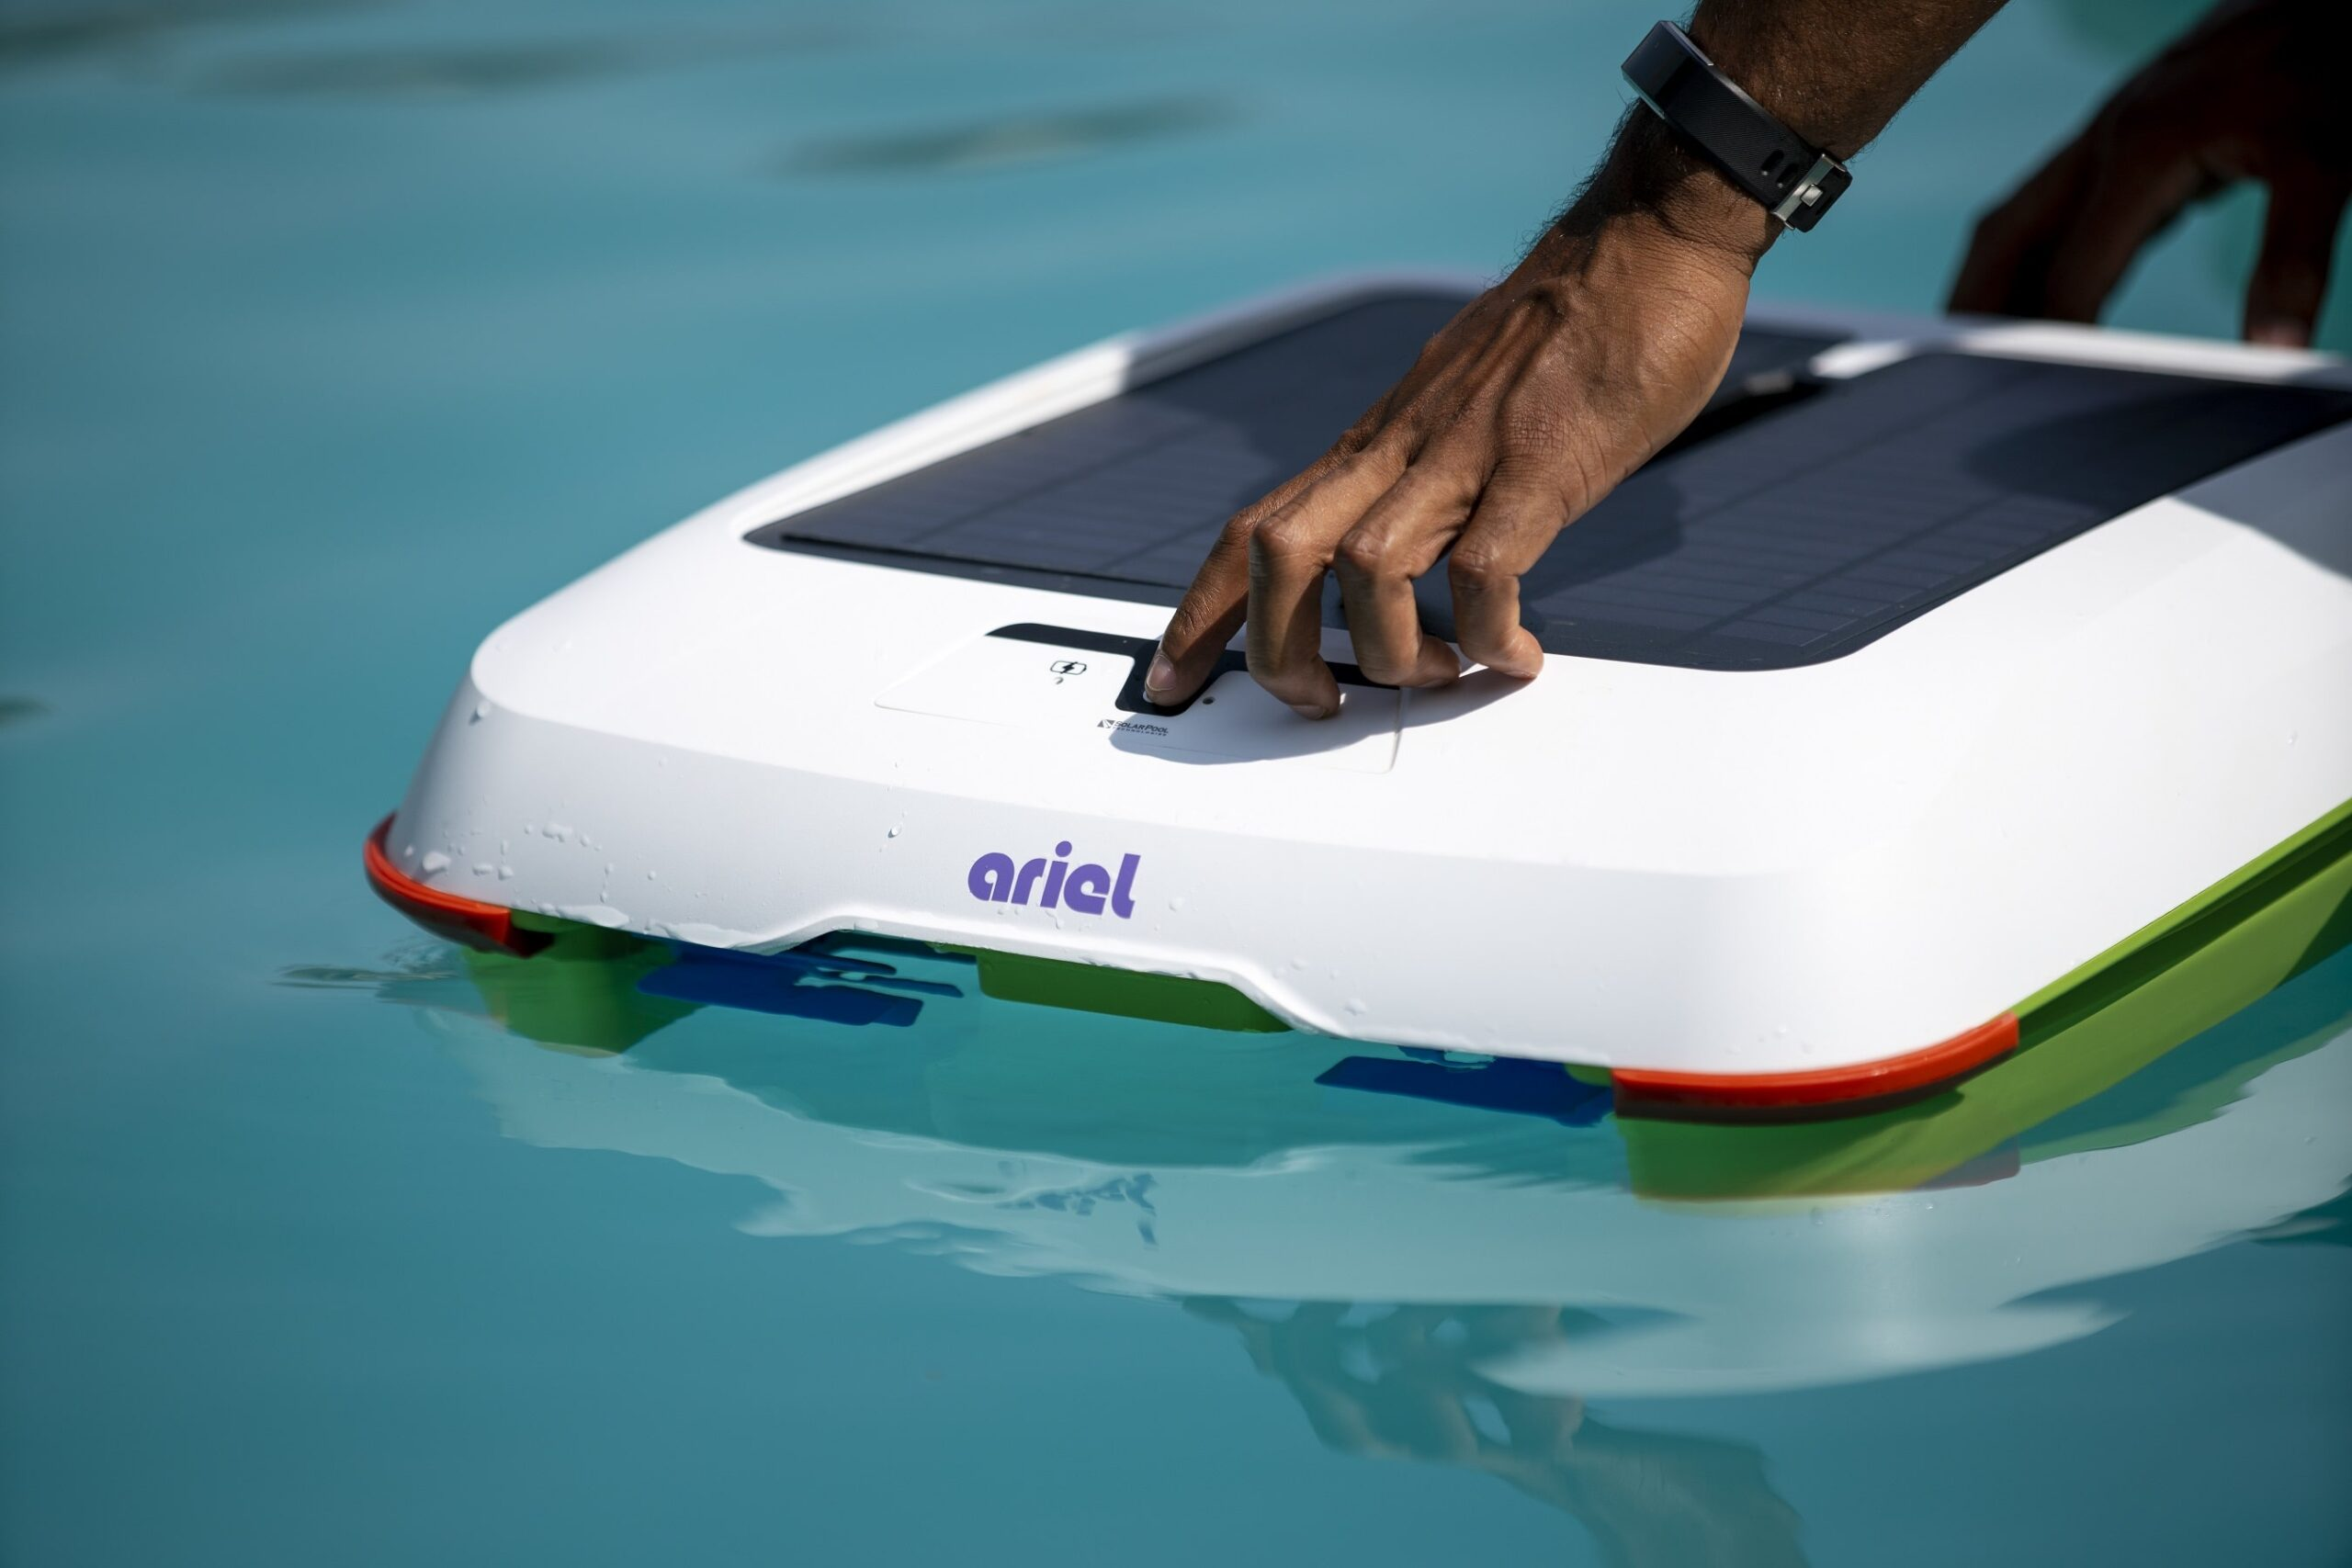 The Ariel Robot Pool Cleaner Keeps Your Pool Free of Debris image